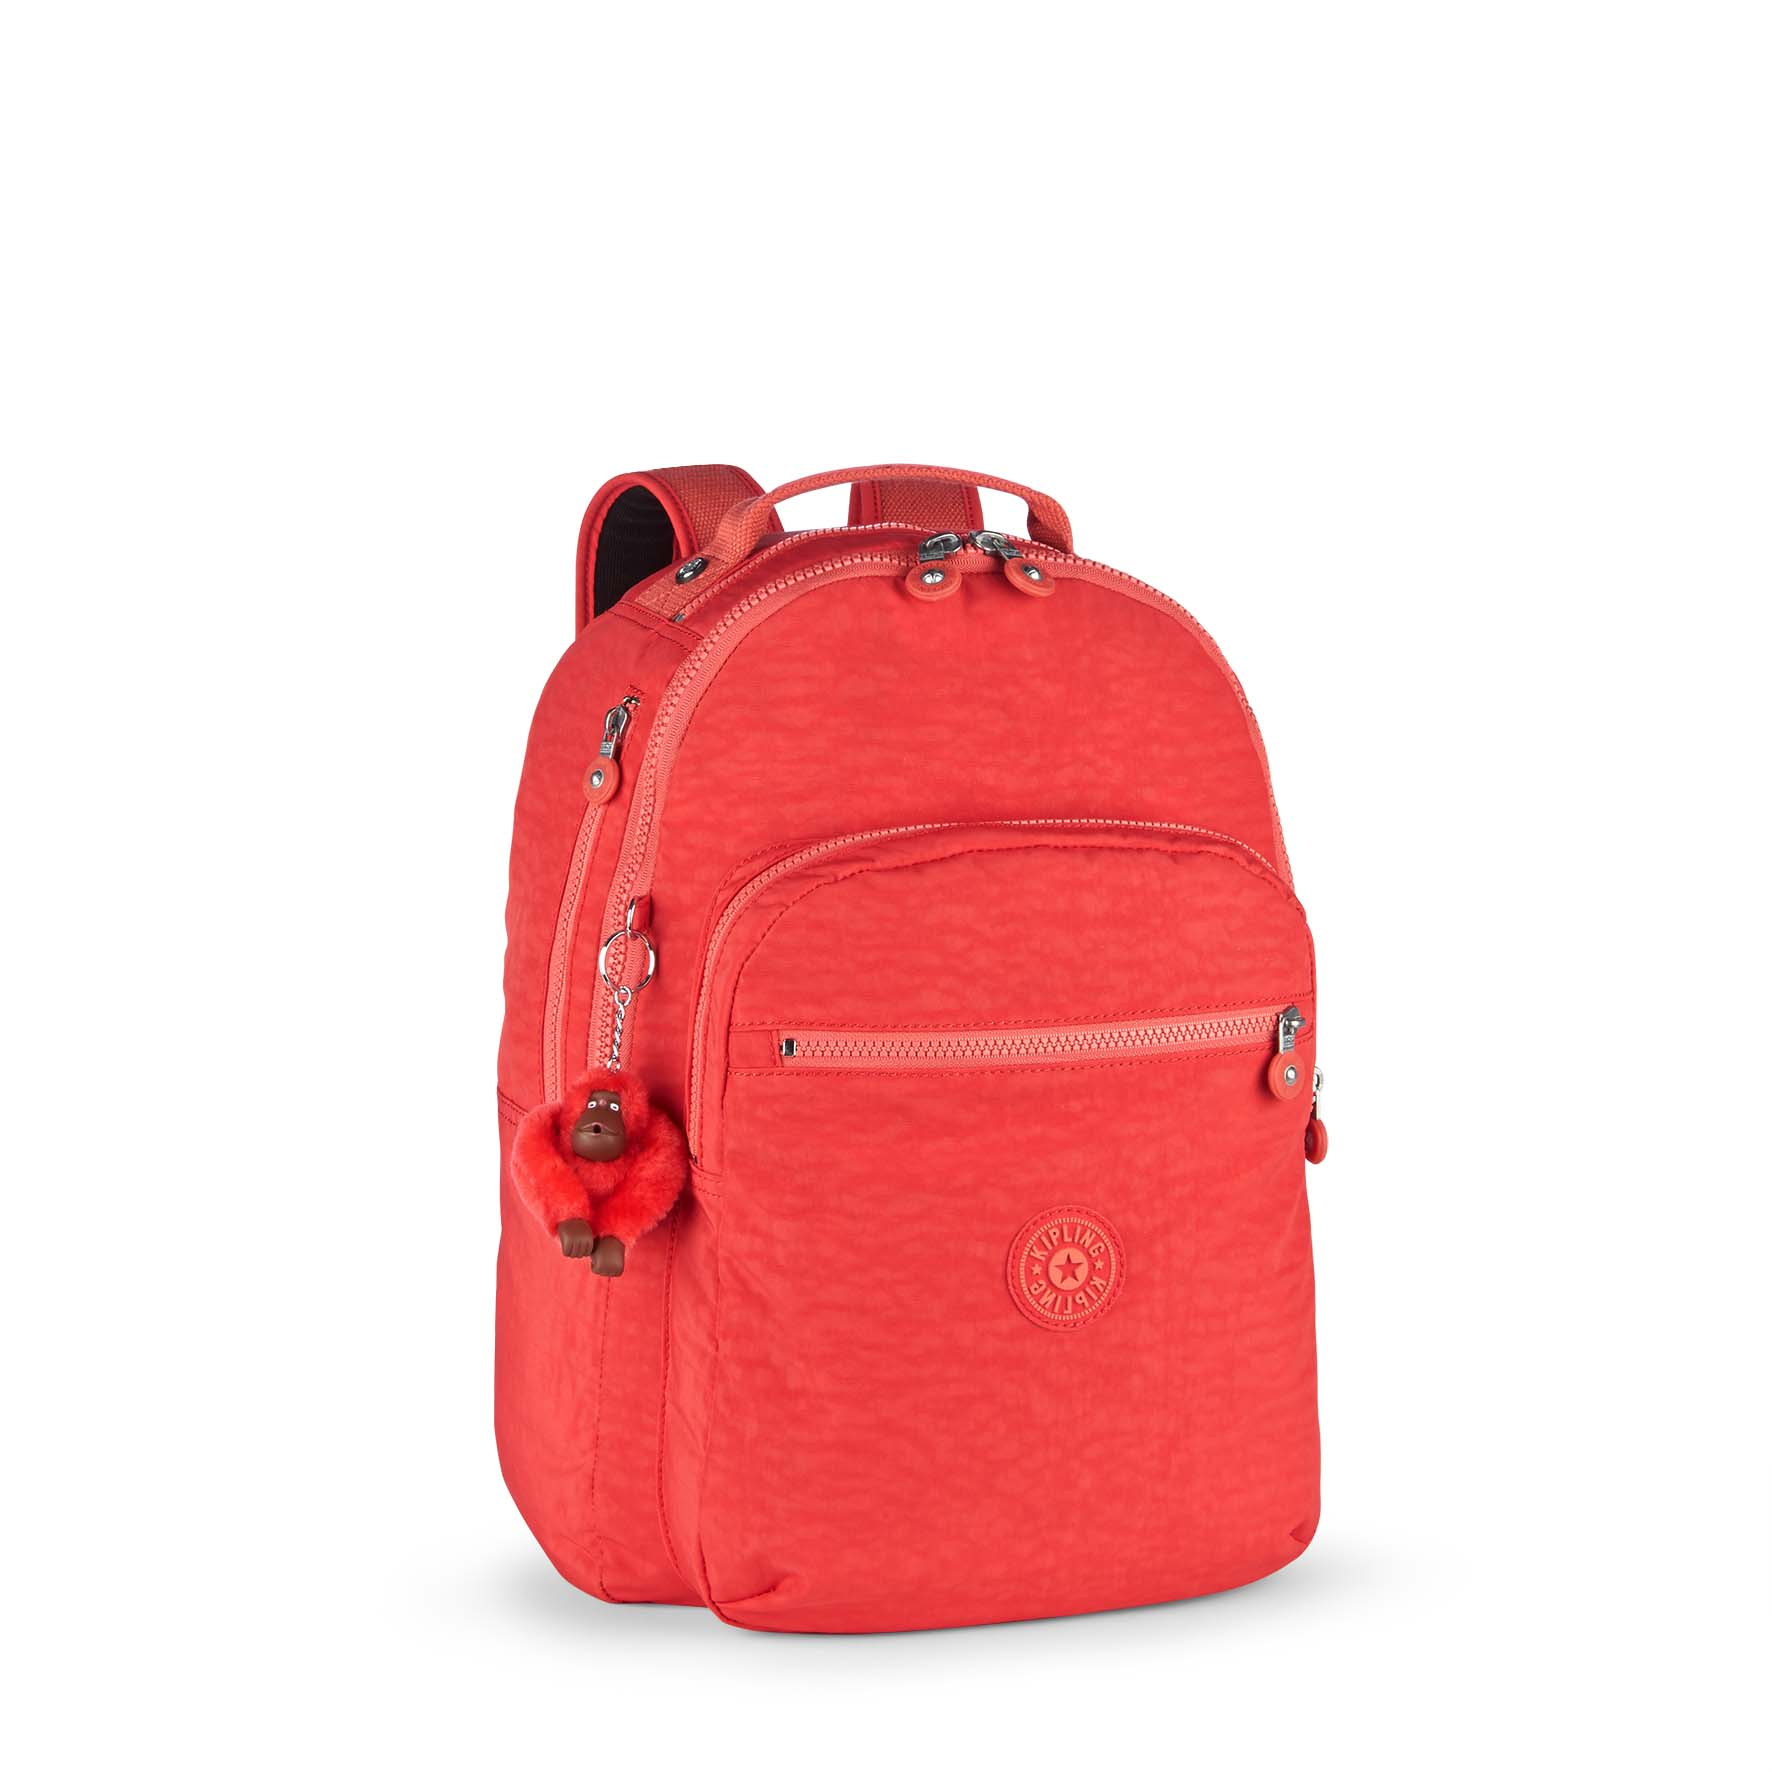 School bag with wheels singapore - Working Bags Everyday Bags